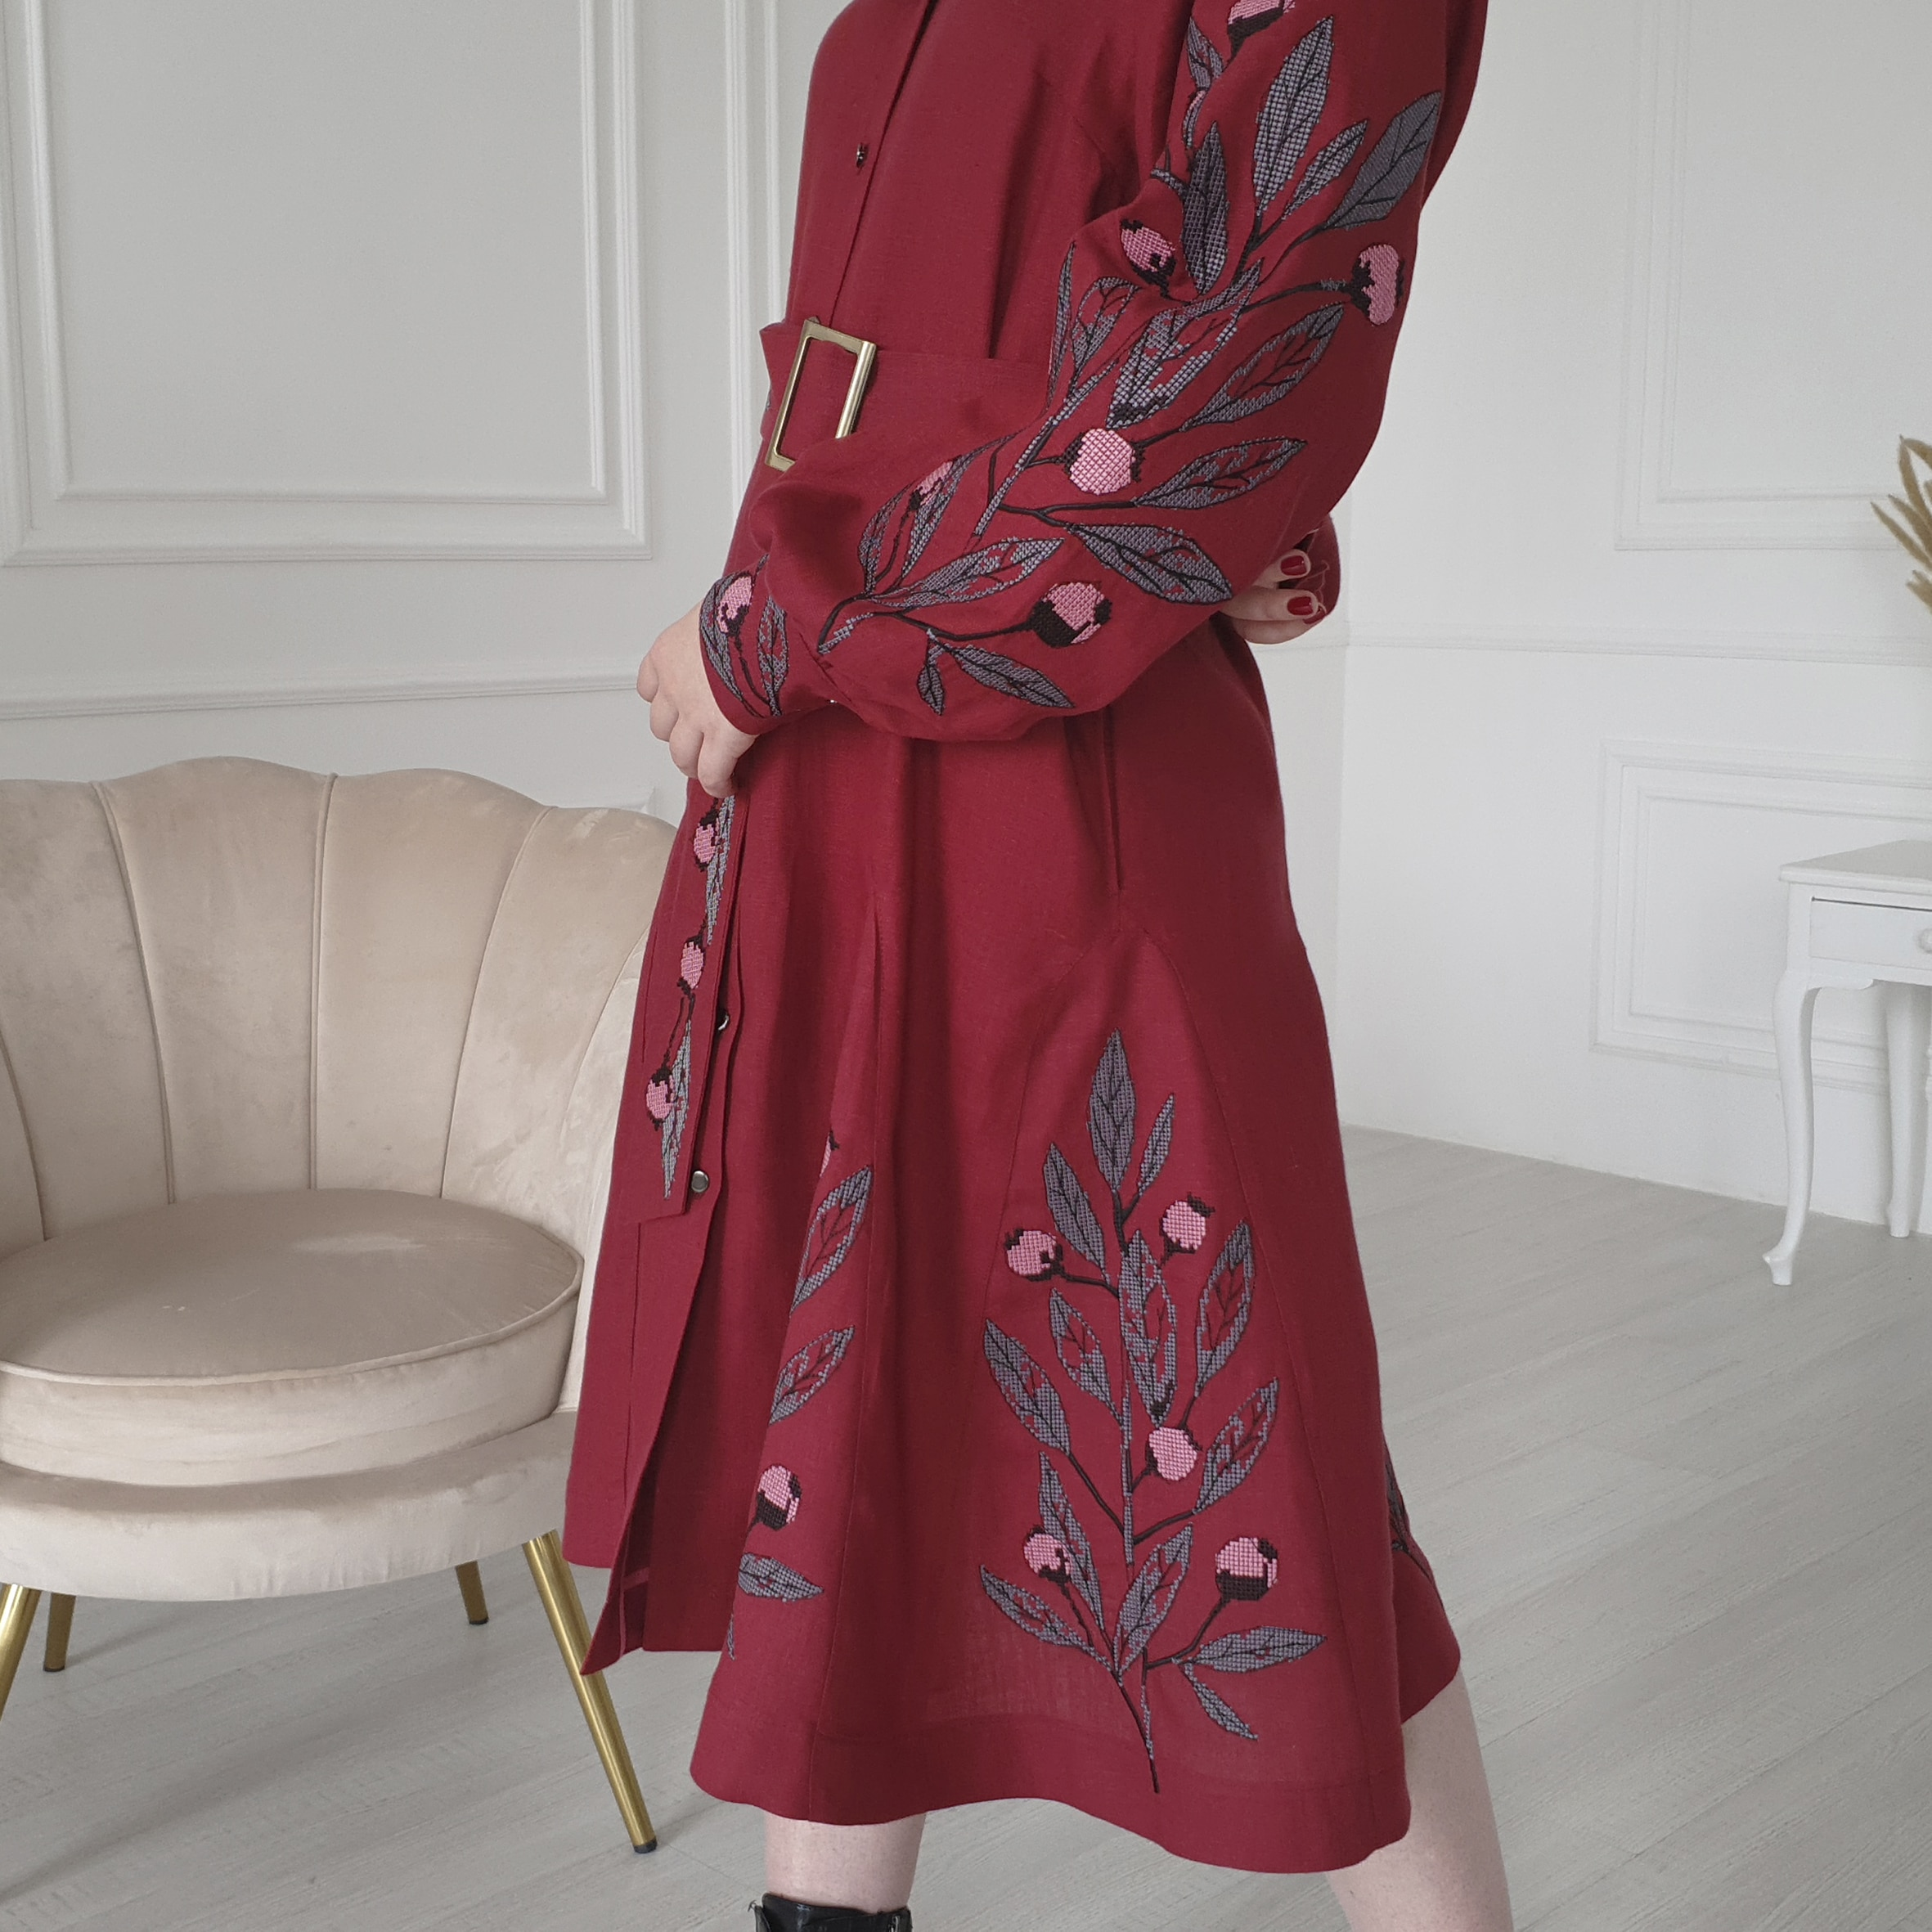 Buy a dress with embroidery